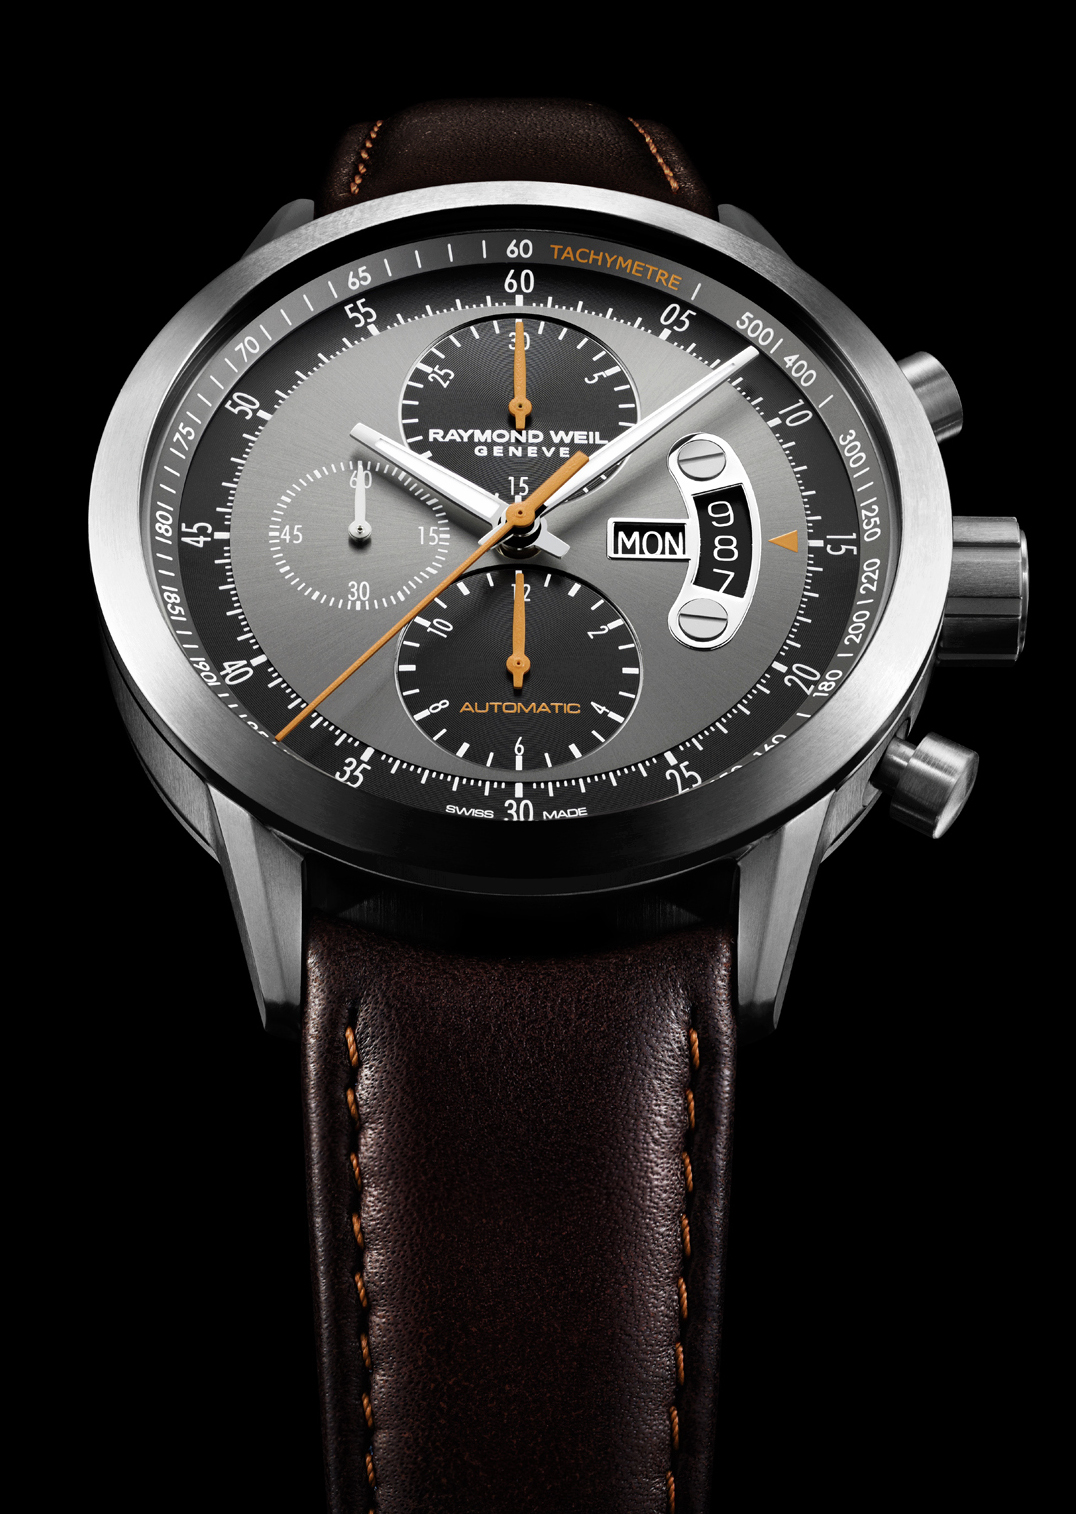 Le Studio Production / RAYMOND WEIL